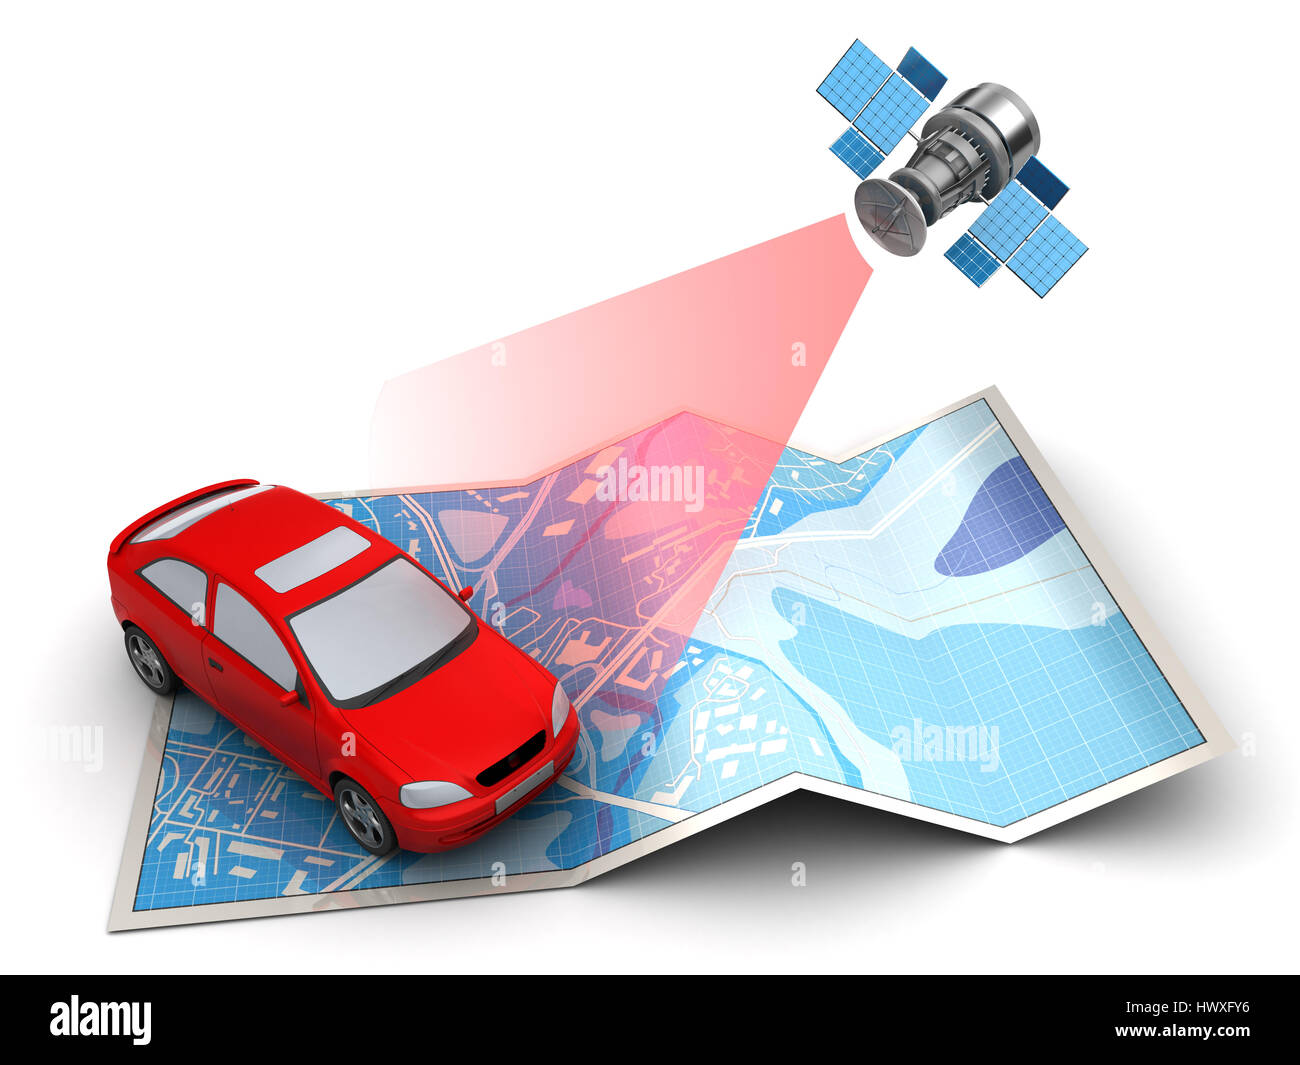 3d illustration of car location tracking with satellite - Stock Image